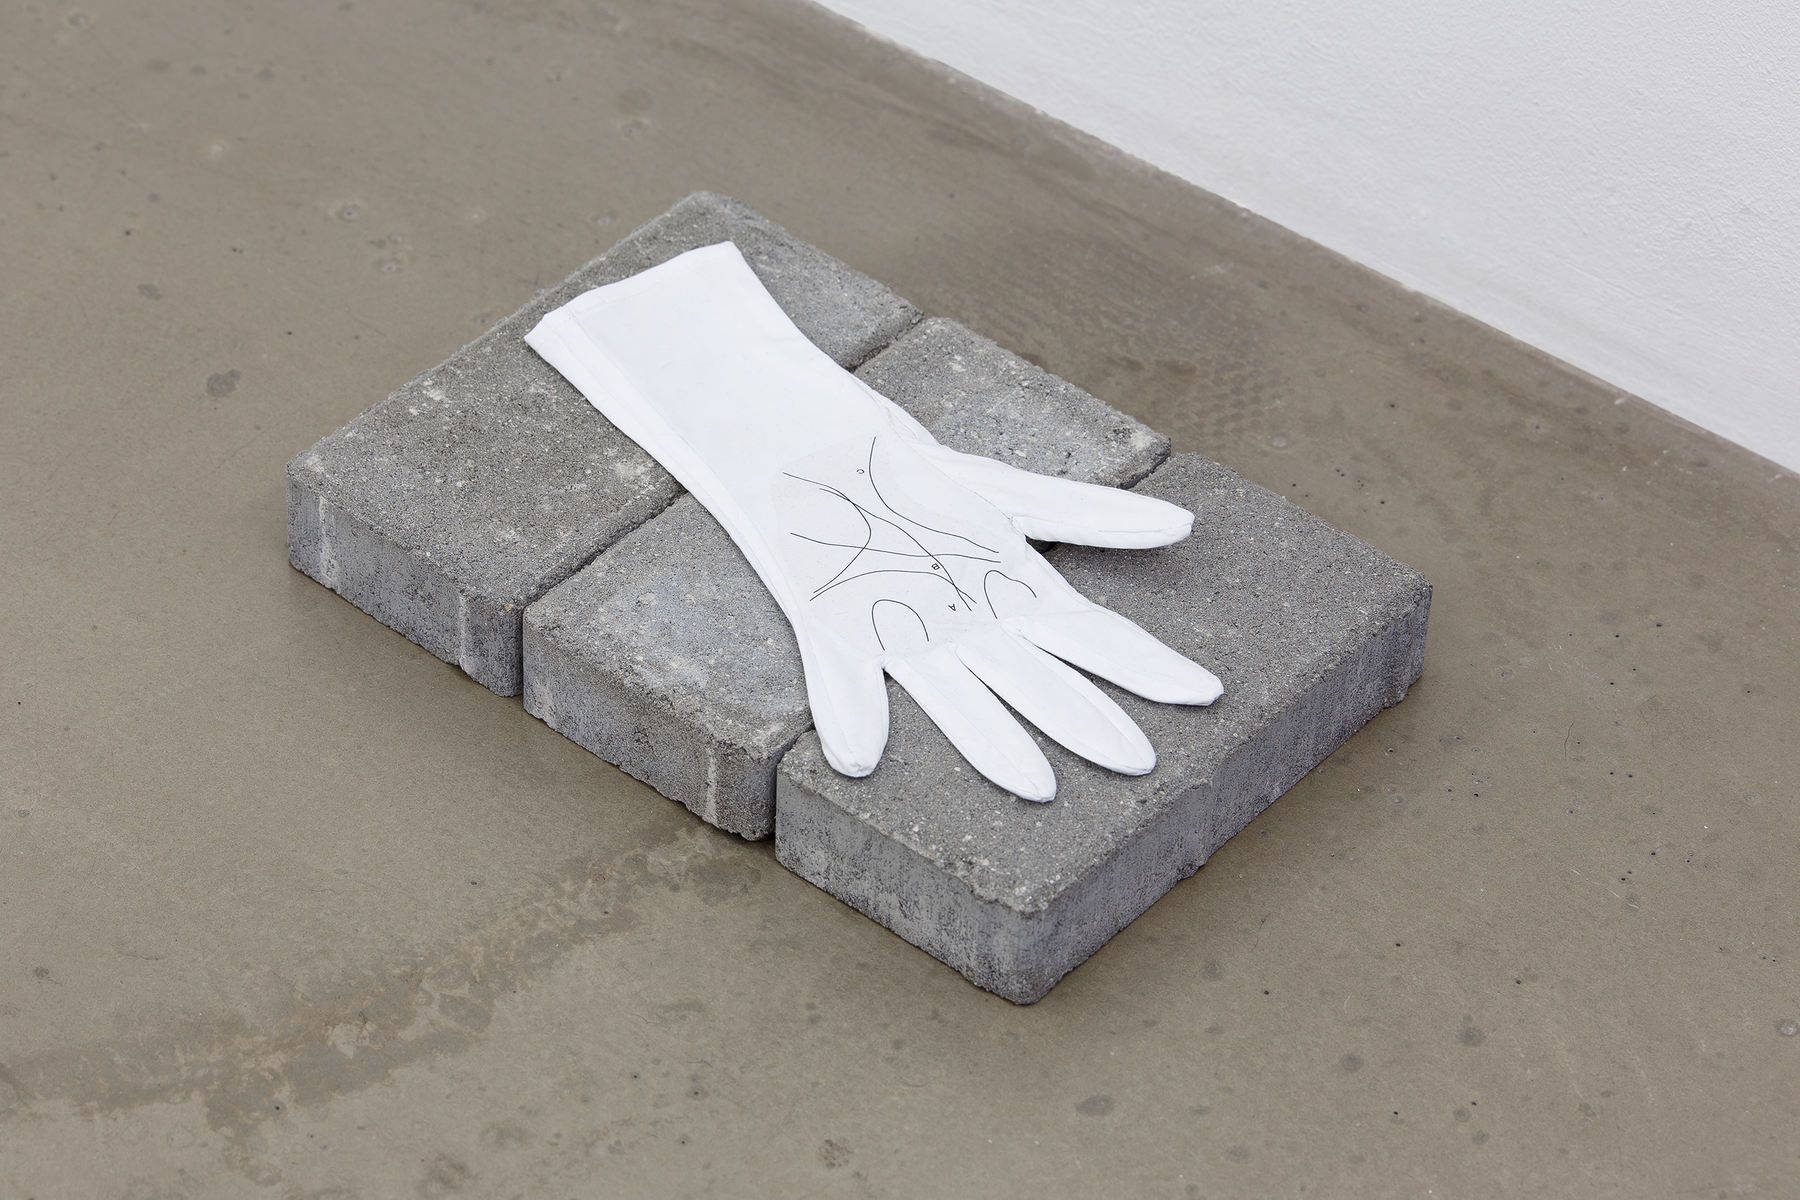 Palmistry, 2015, cotton glove, 14 x 27 cm (1)